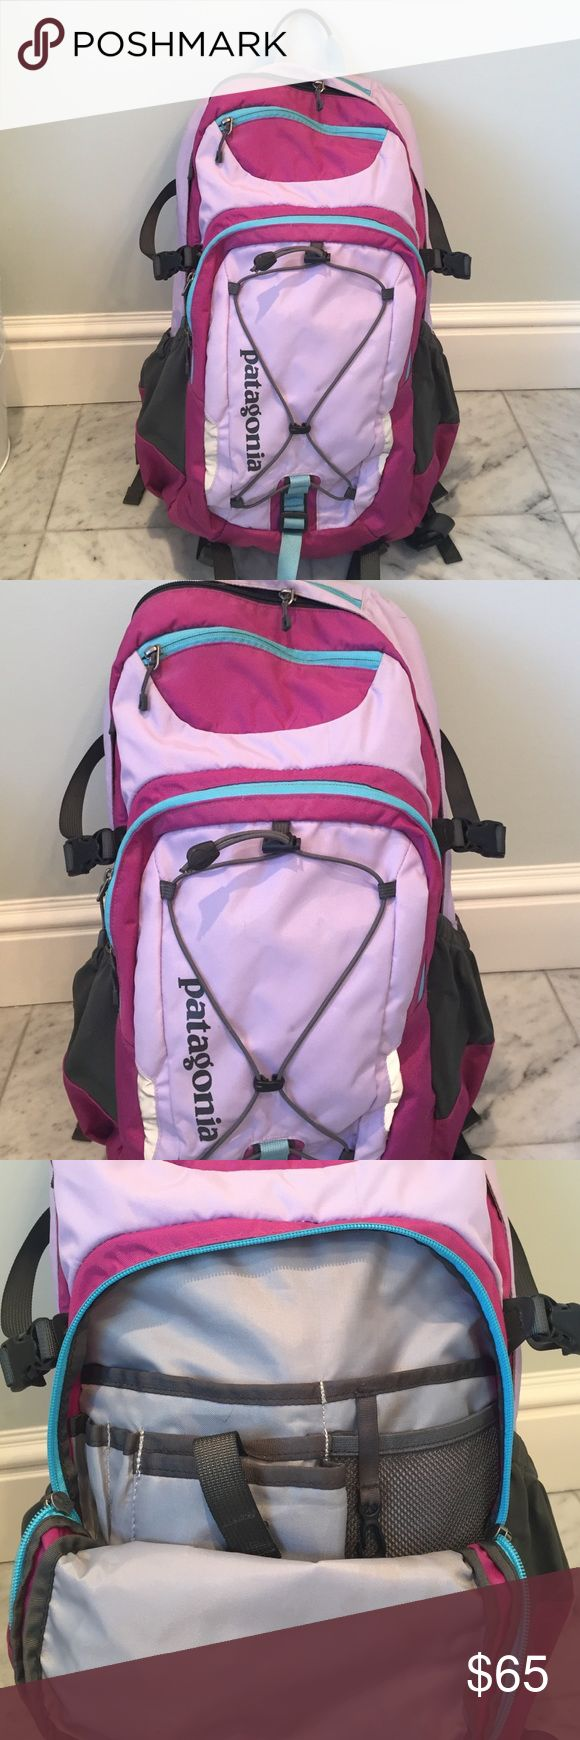 Patagonia Back Pack Patagonia Pastel Back pack. In good condition. Signs of wear on the top zipper pocket and left cup holders. Used for 1 year of school - plenty of life left! Patagonia Bags Backpacks